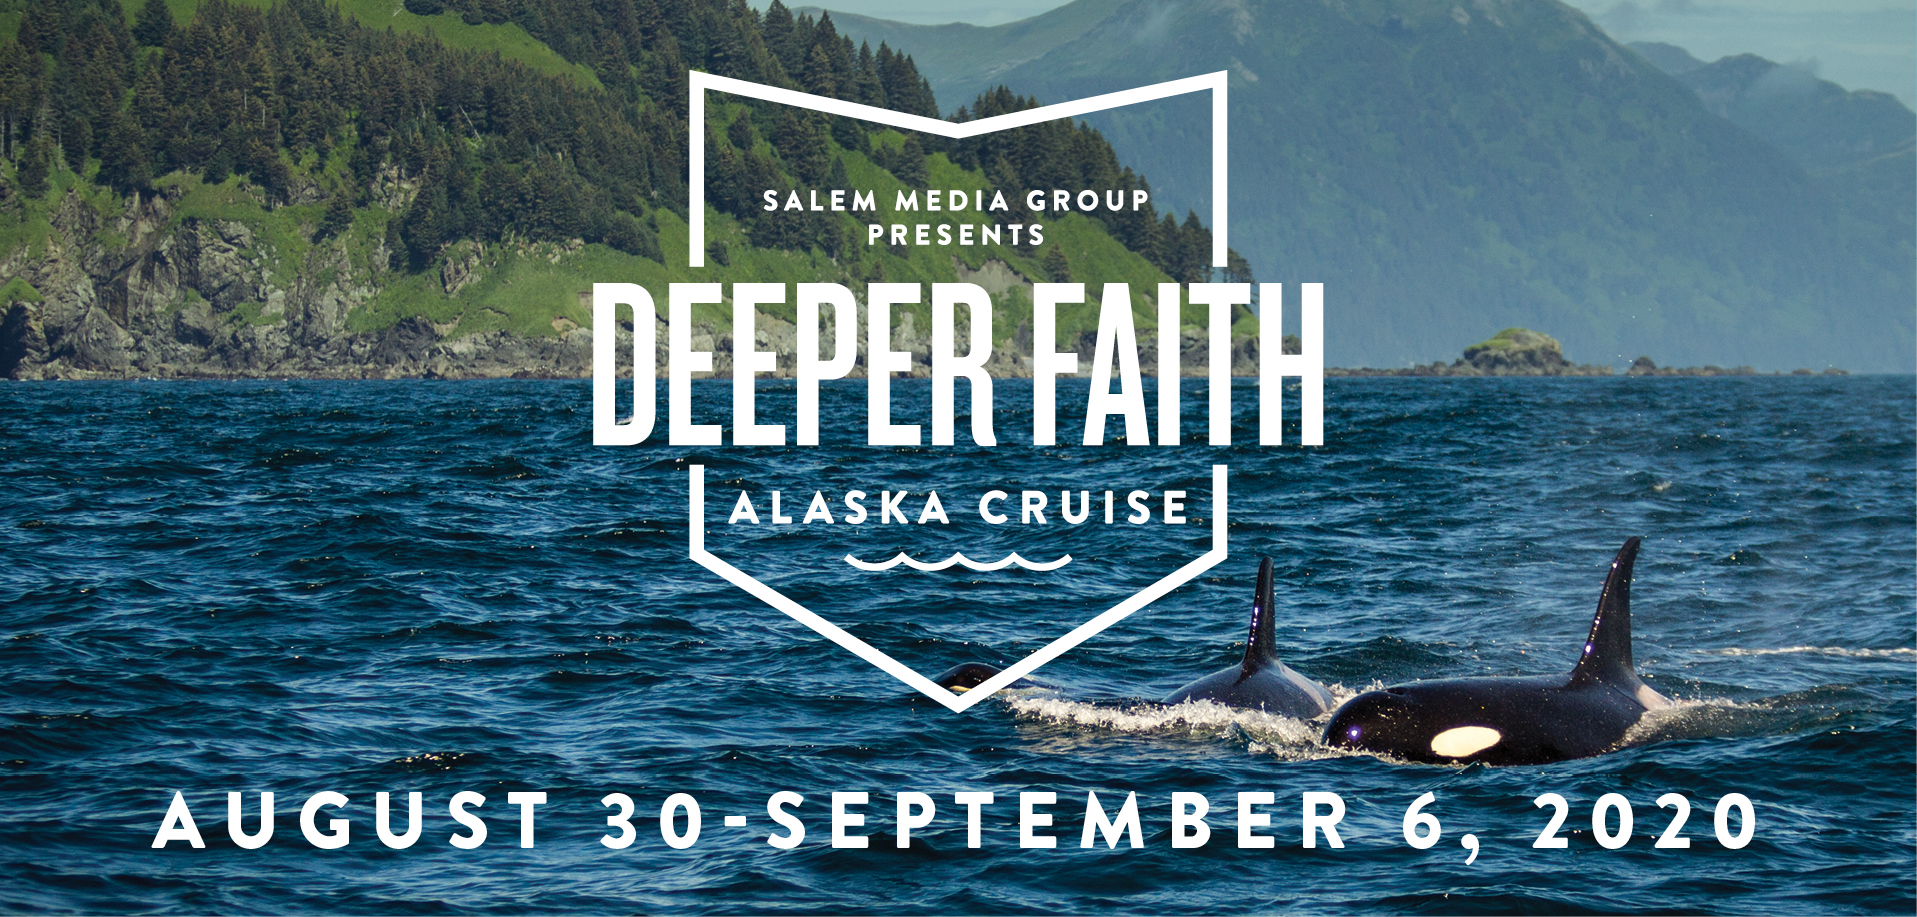 Take a Christian Cruise with Deeper Faith Cruise - Christian Cruise to Alaska - August 30 - September 6, 2020